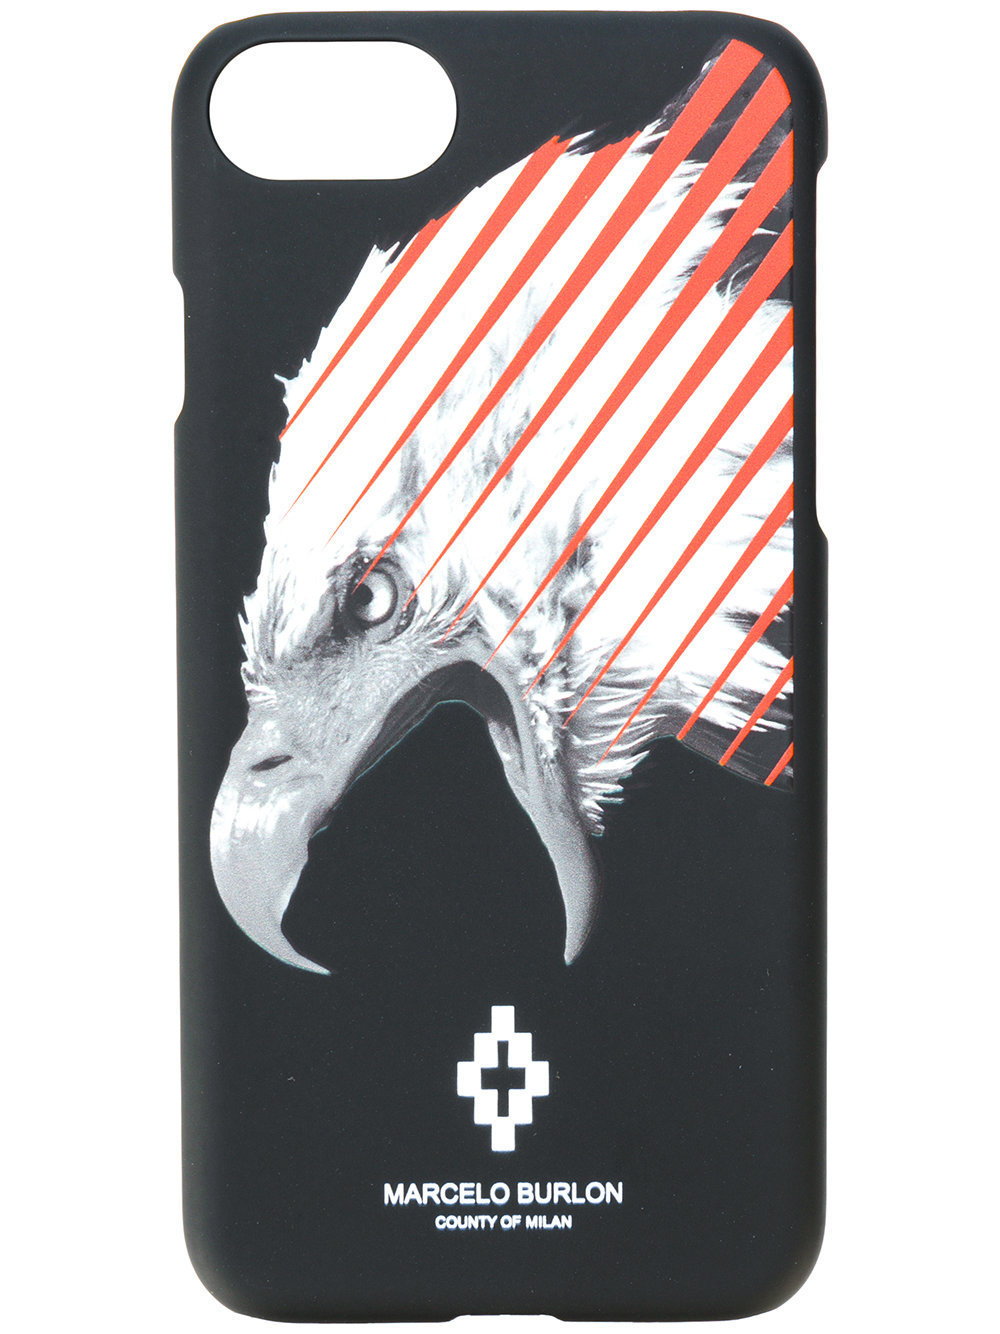 【関税送料込】MARCELO BURLON  Iamens iPhone 7 カバー